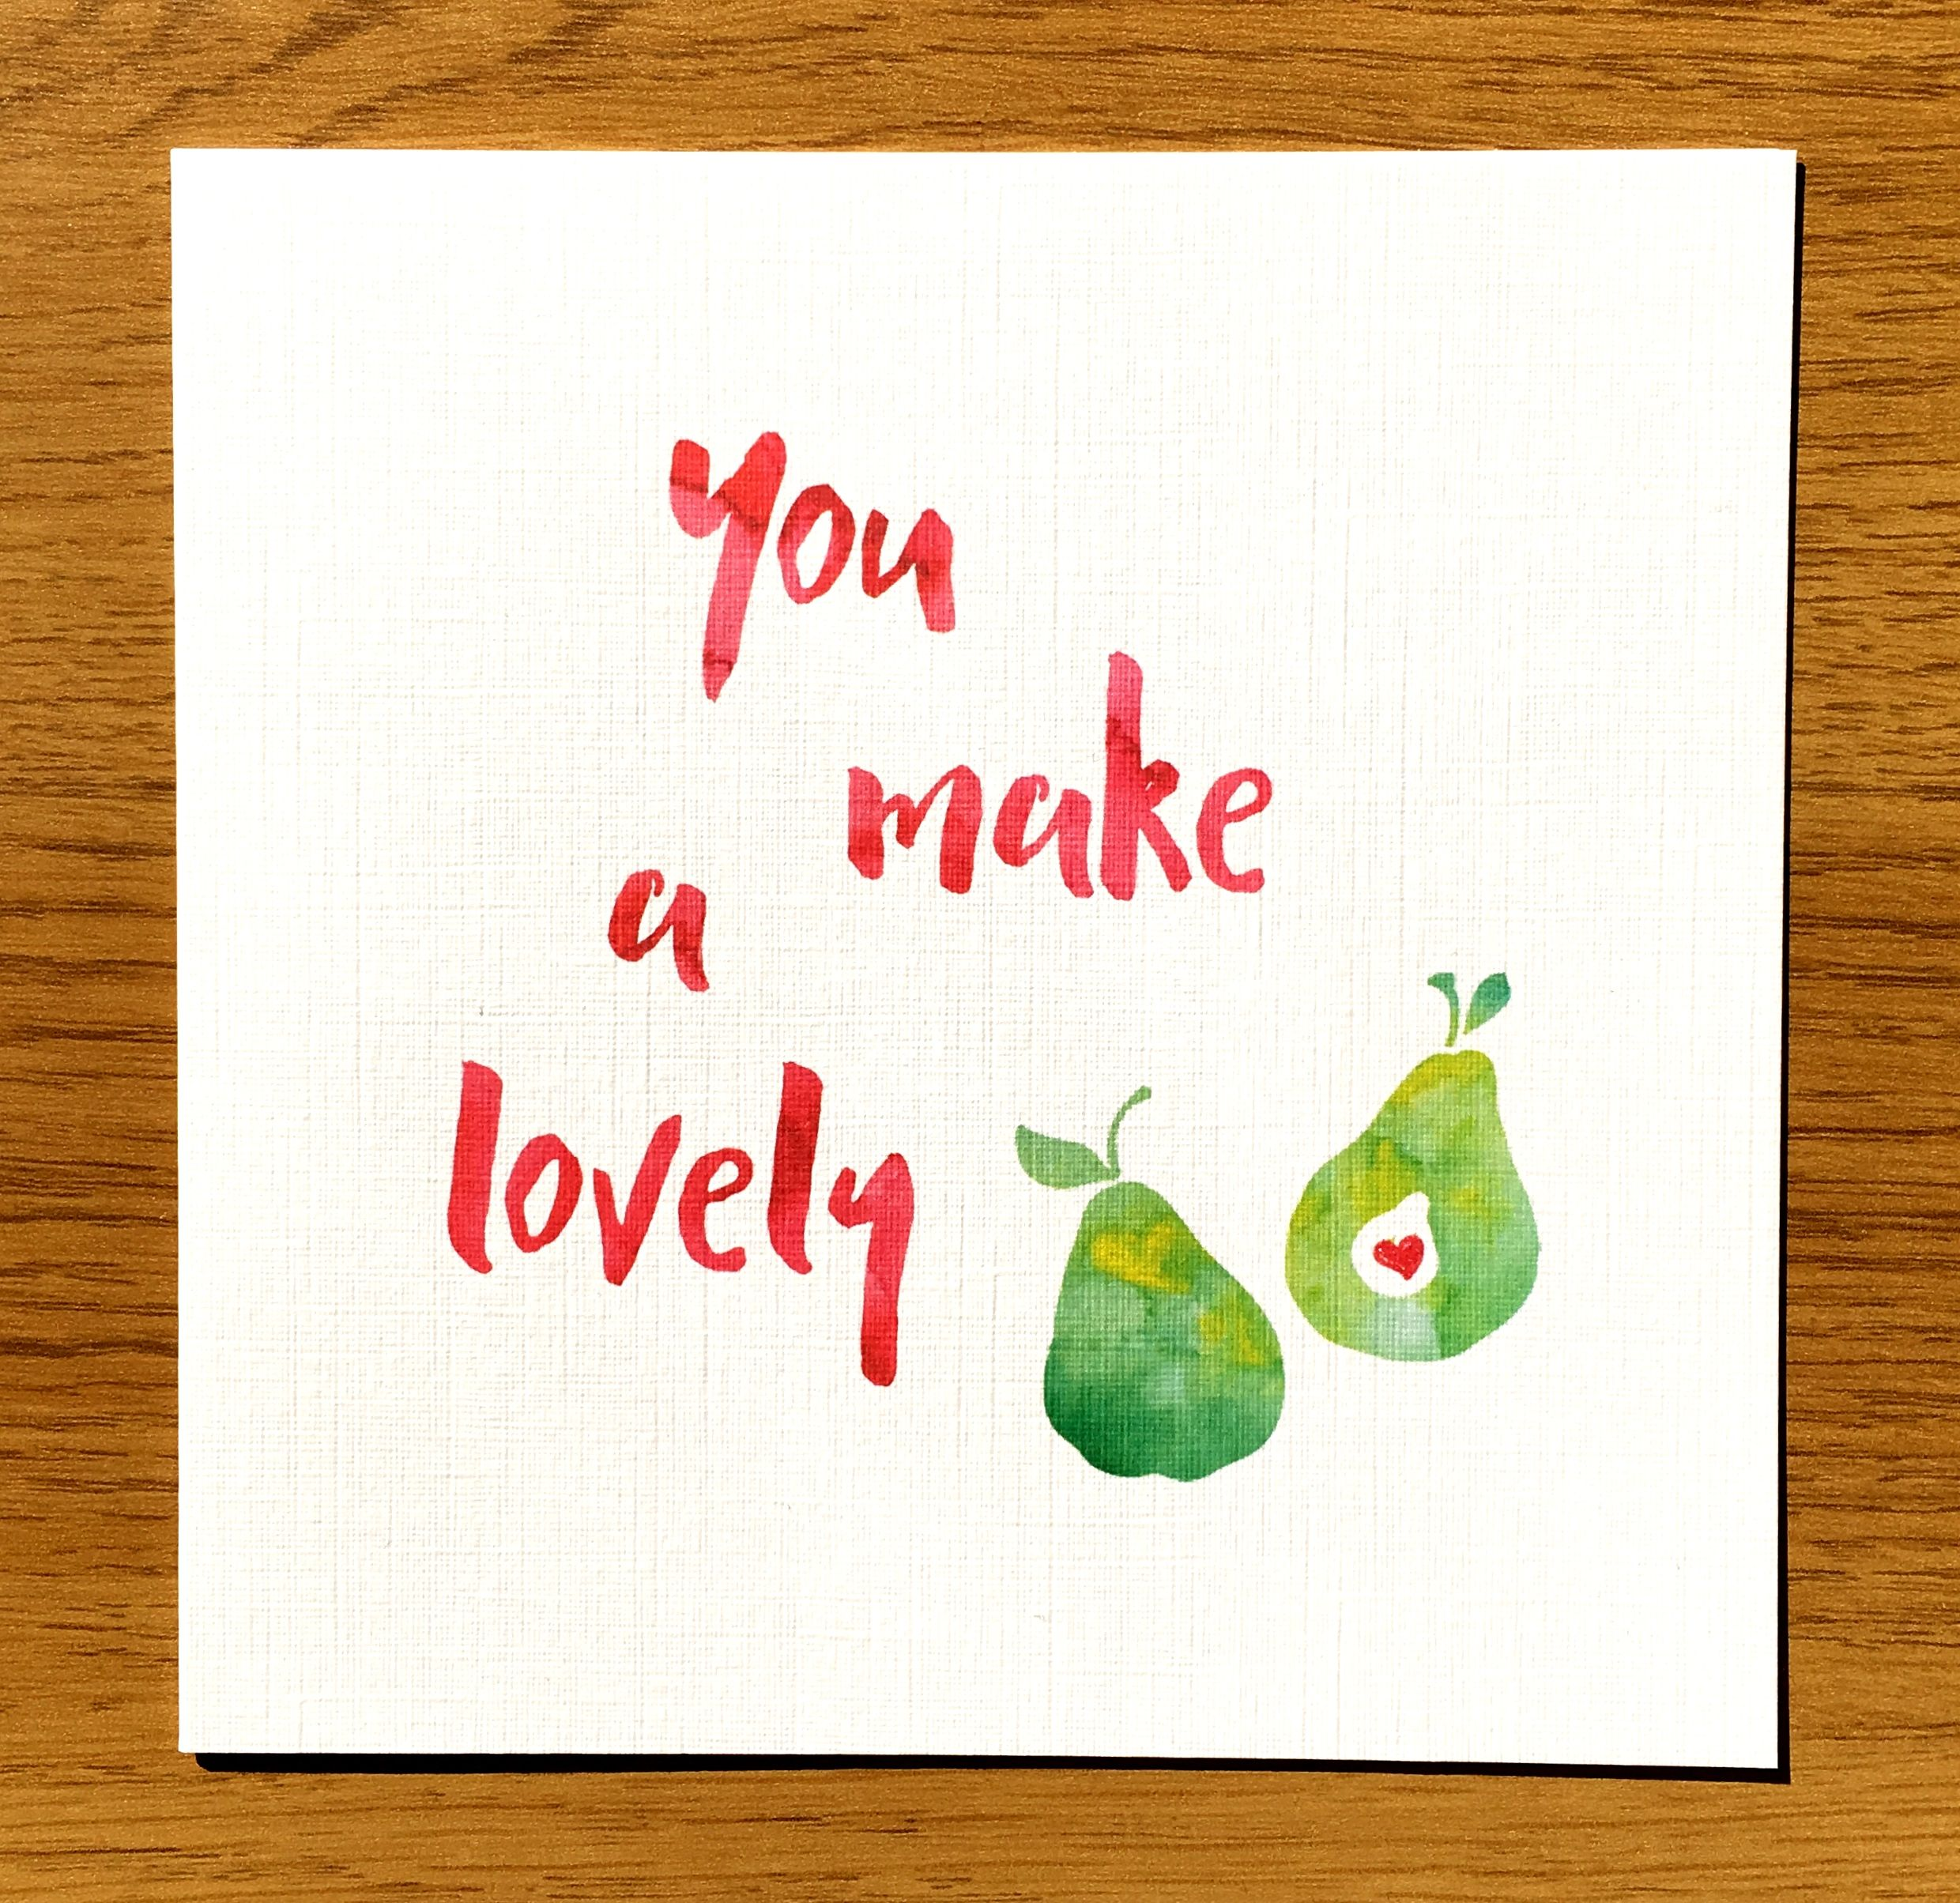 You make a lovely pairpear weddingengagementann wedding cards handmade greetings cards and personalised gifts kristyandbryce Choice Image